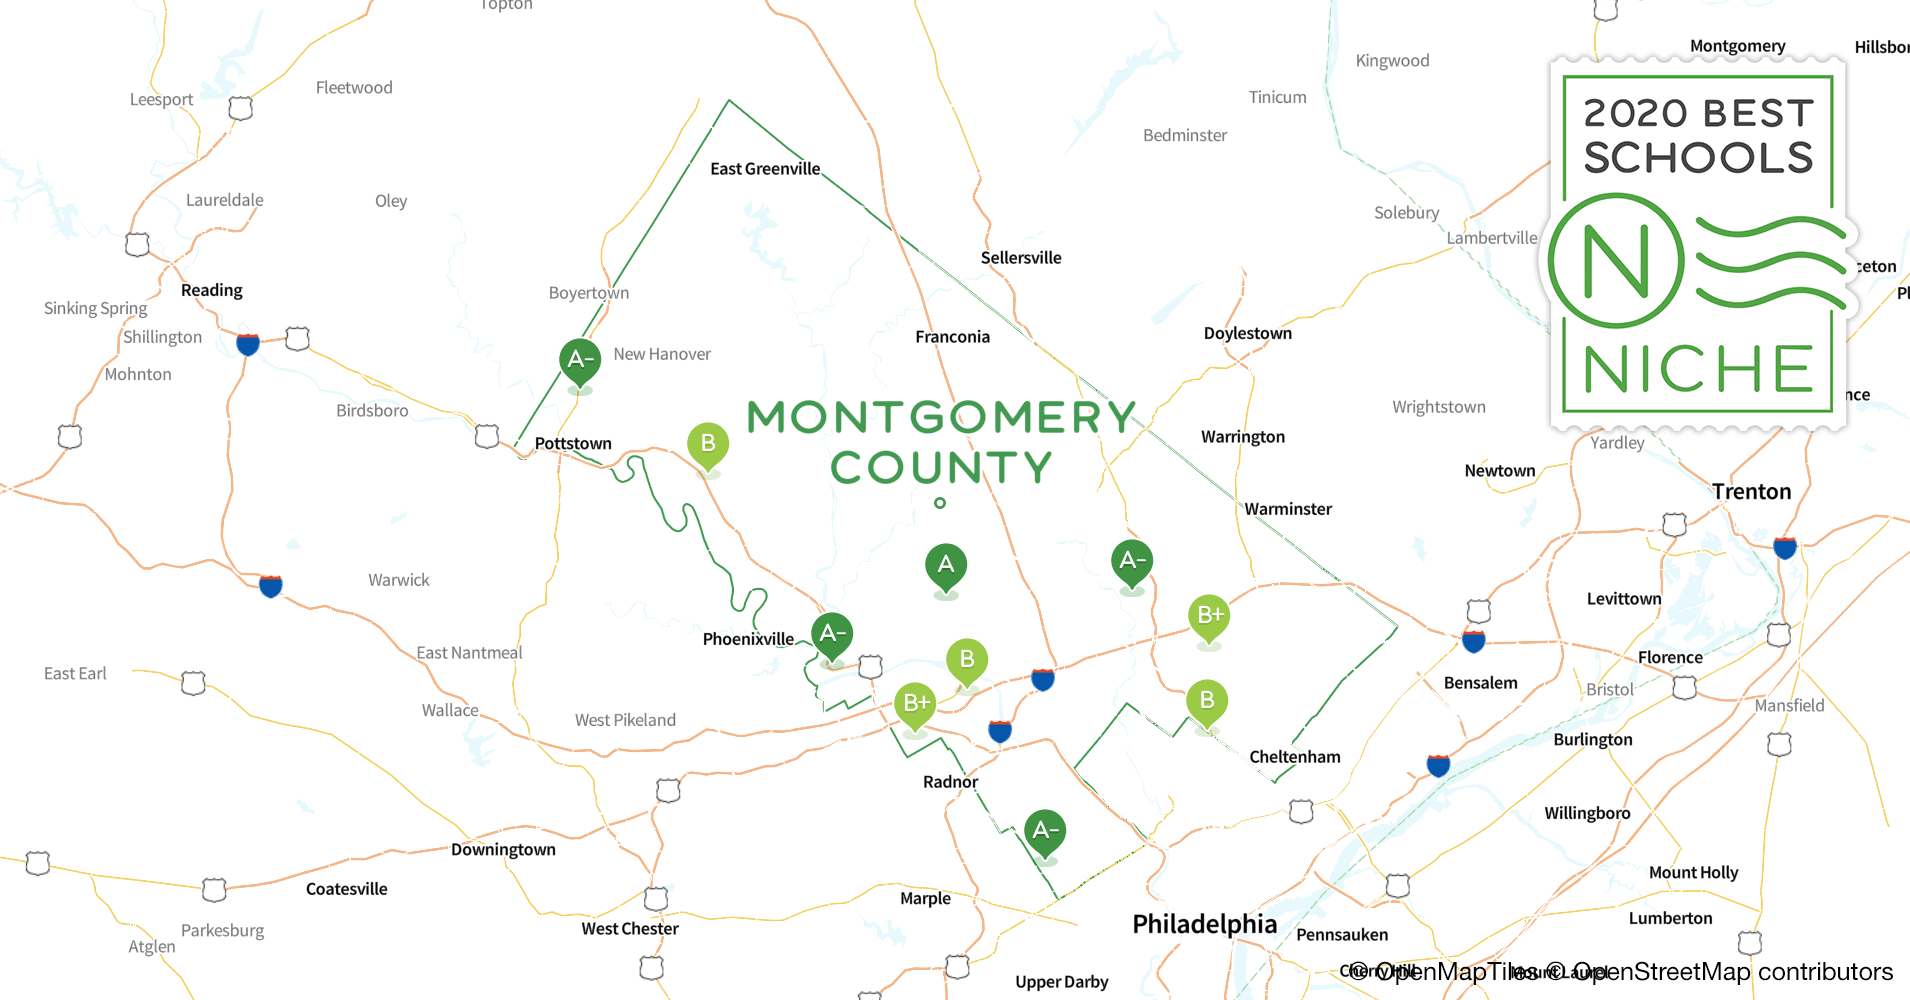 School Districts in Montgomery County, PA - Niche